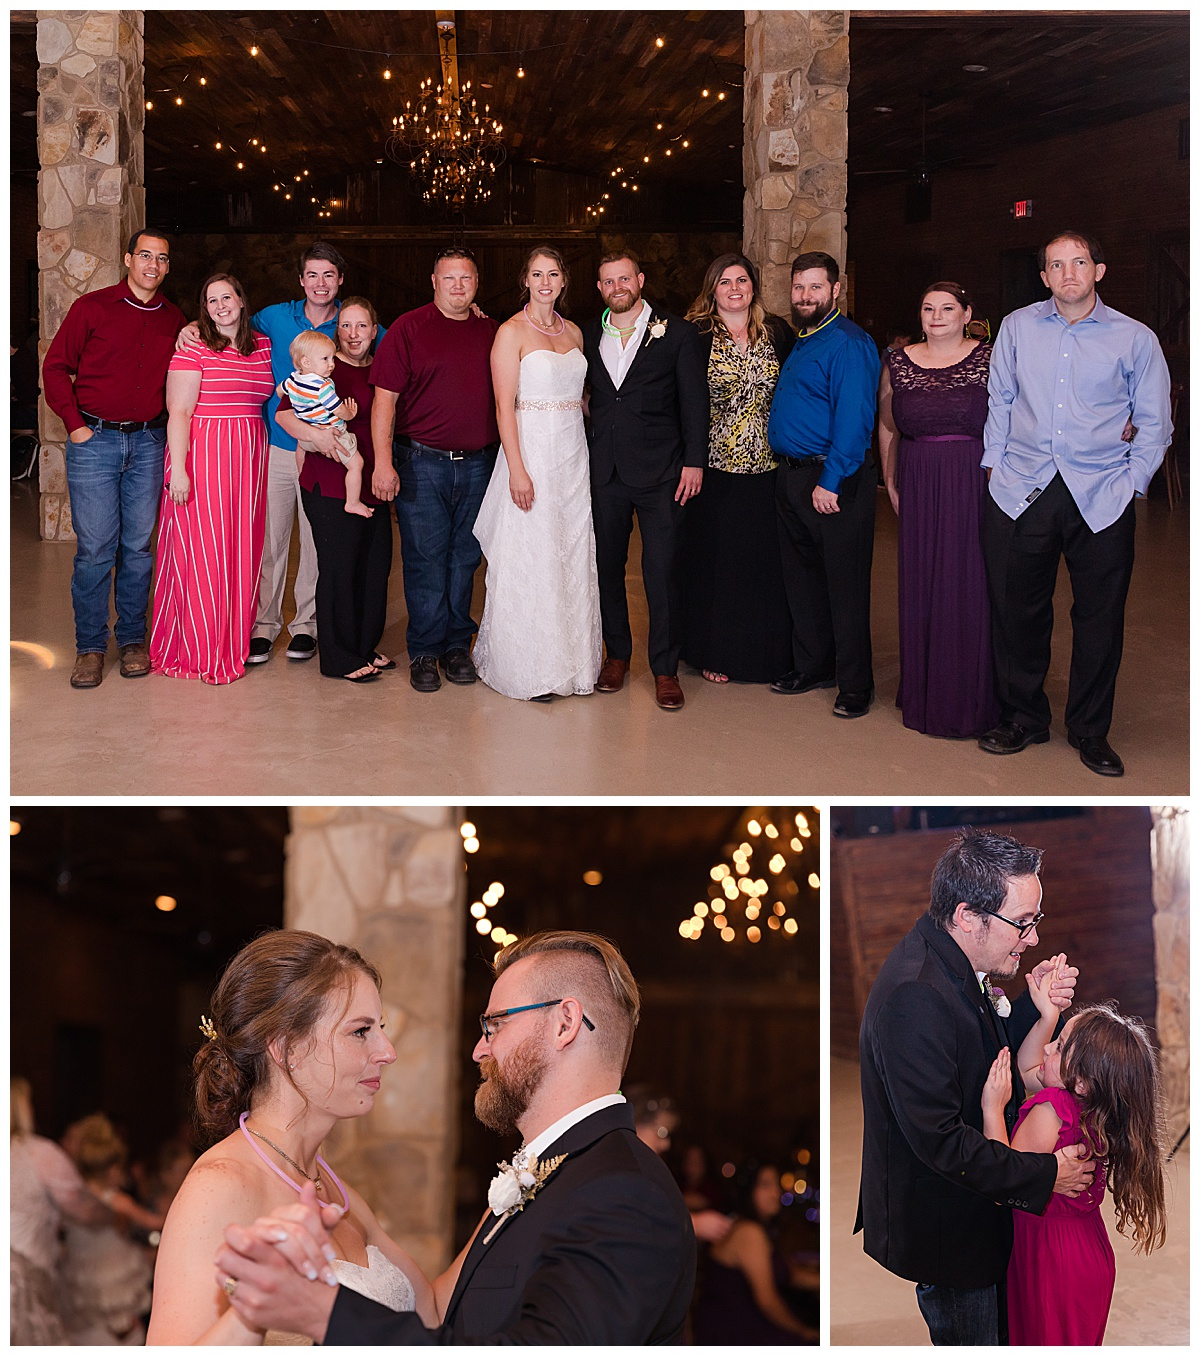 Texas-Magnolia-Bells-Rustic-Wedding-Carly-Barton-Photography_0084.jpg